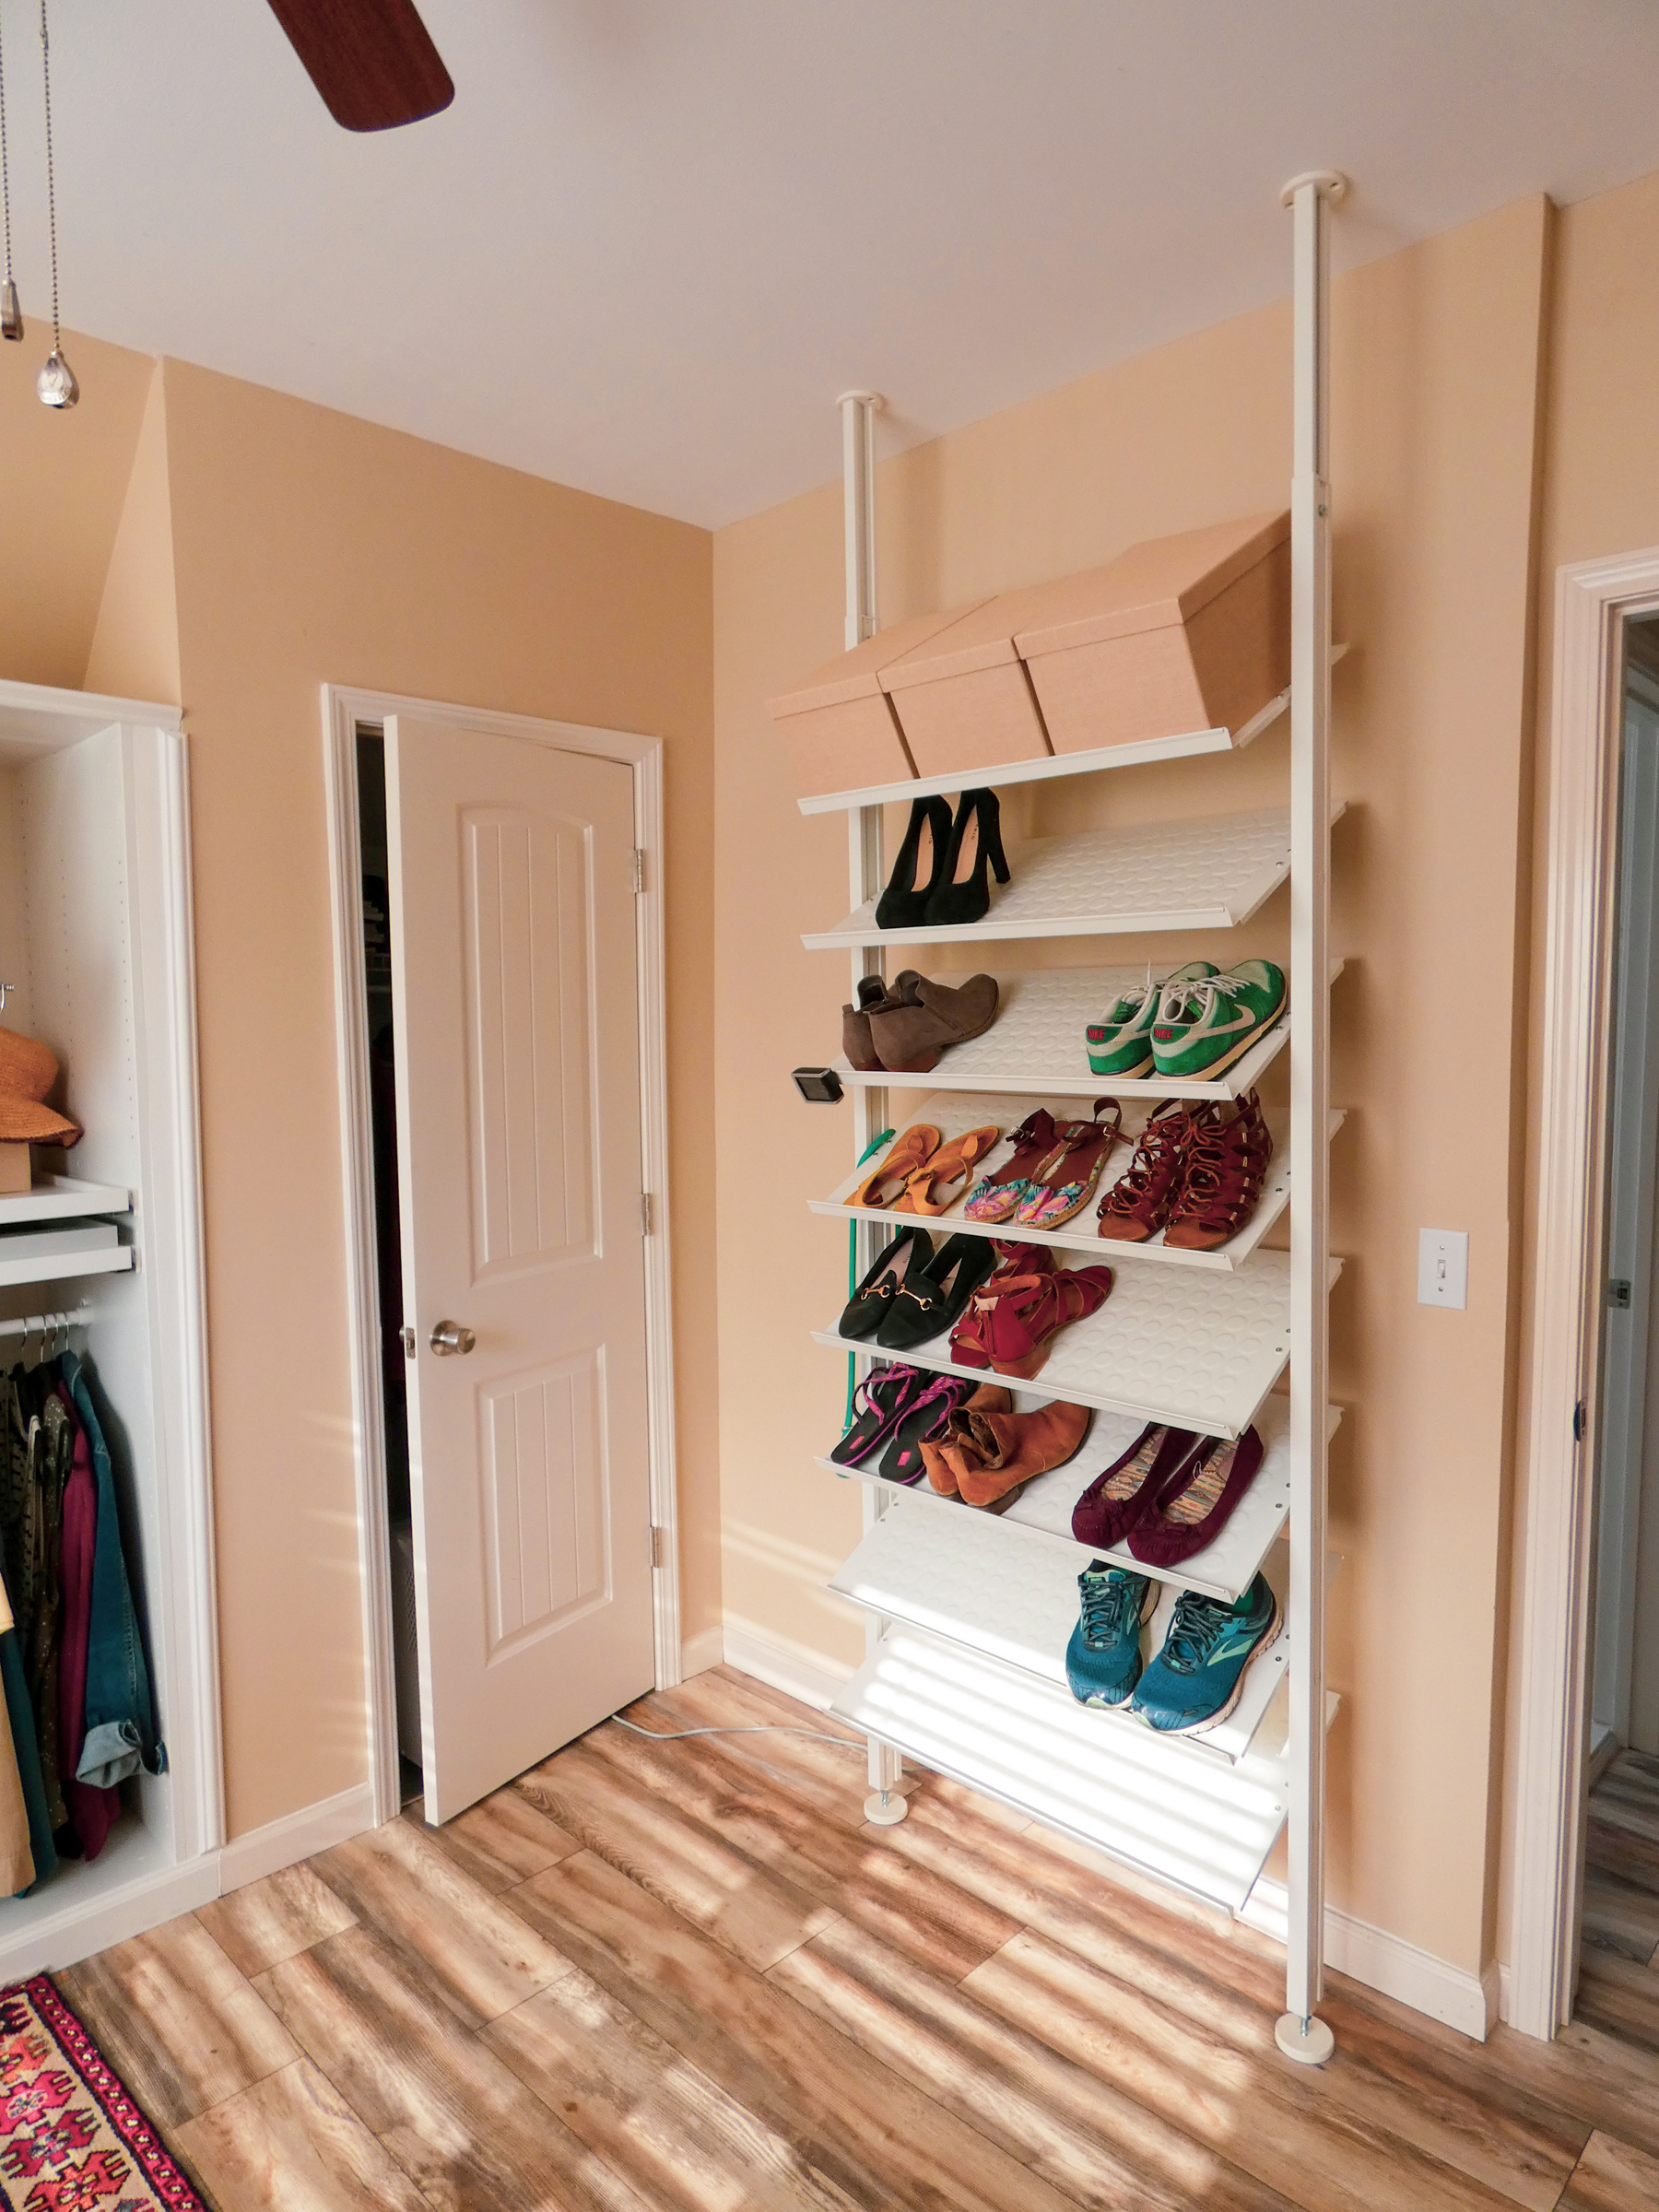 A floor to ceiling shelves built to hold shoes in a dressing room.